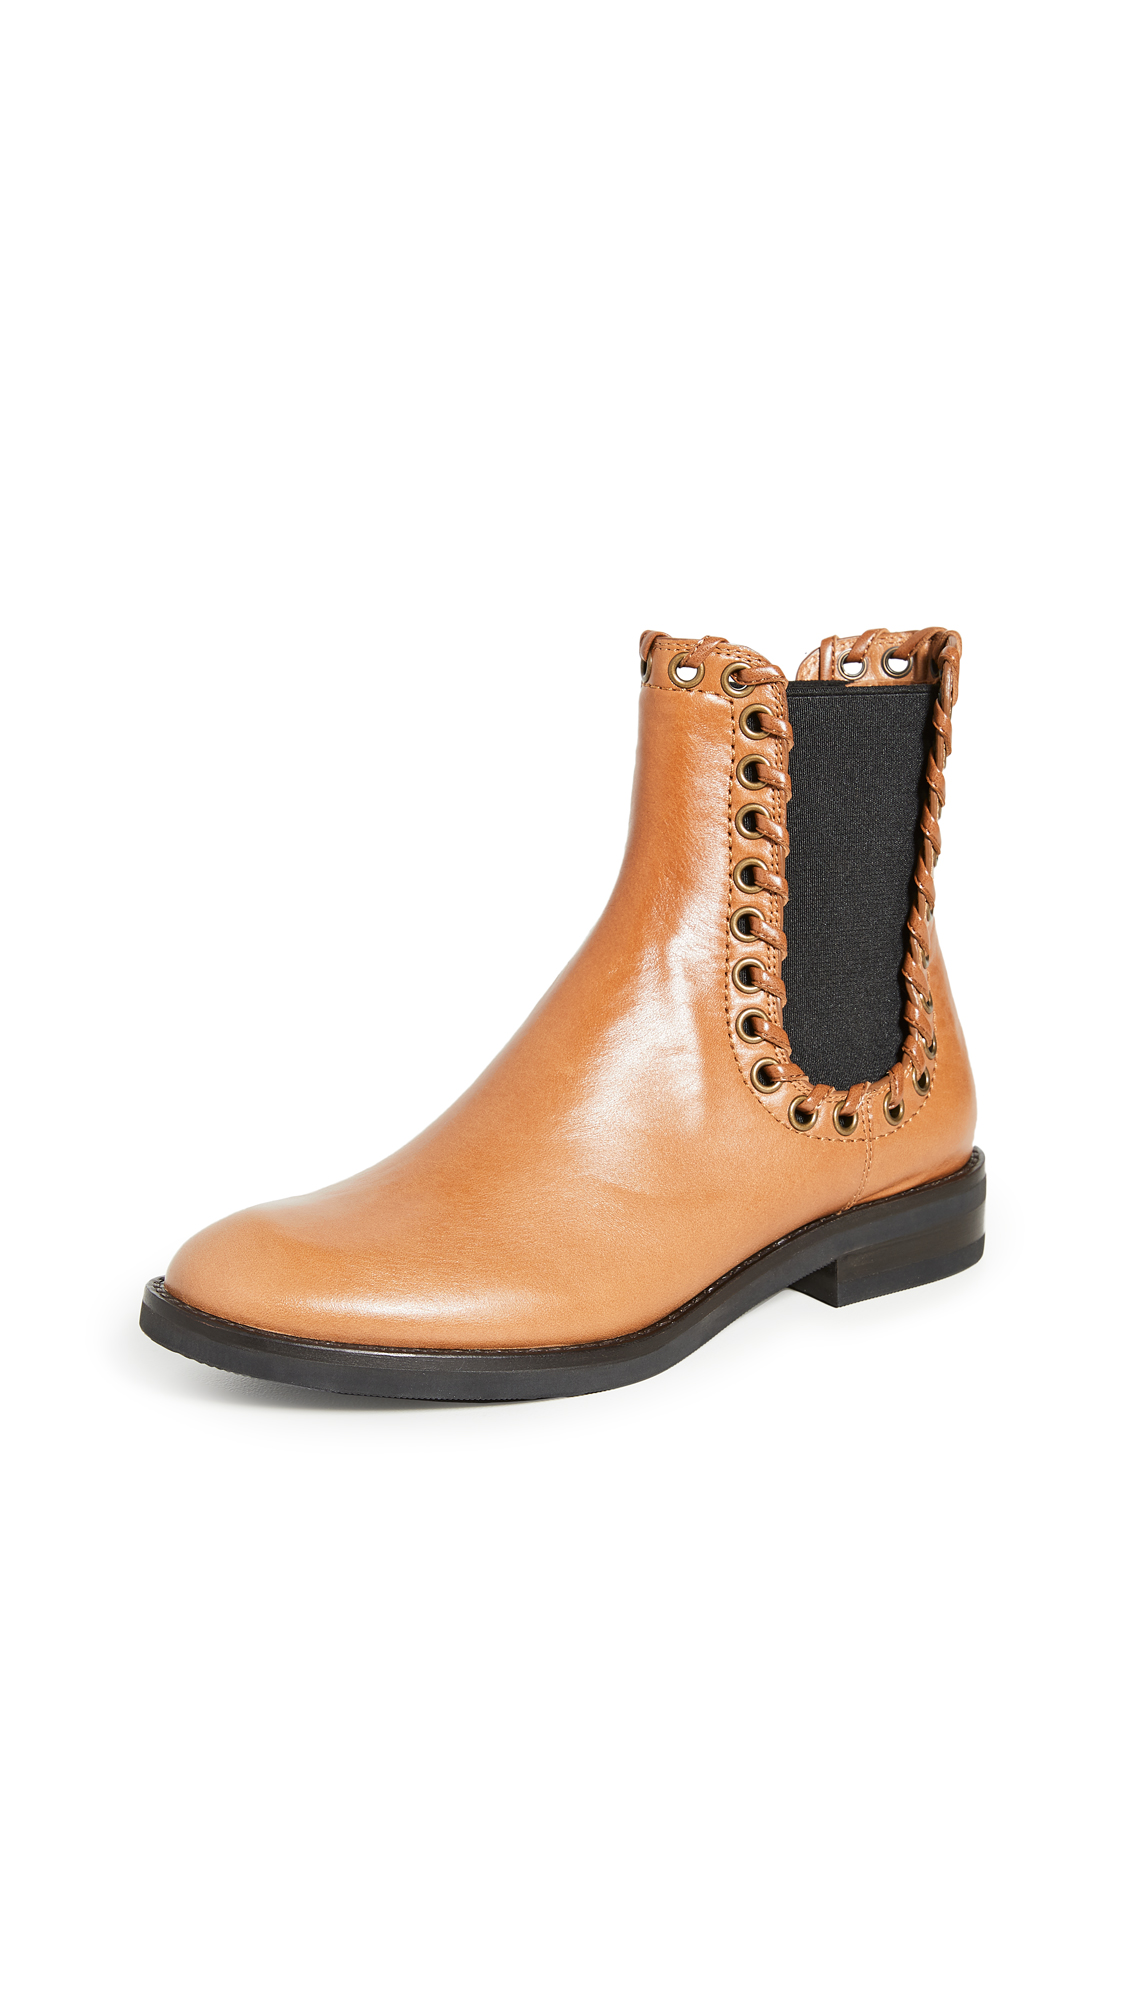 Buy See by Chloe Helen Chelsea Boots online, shop See by Chloe